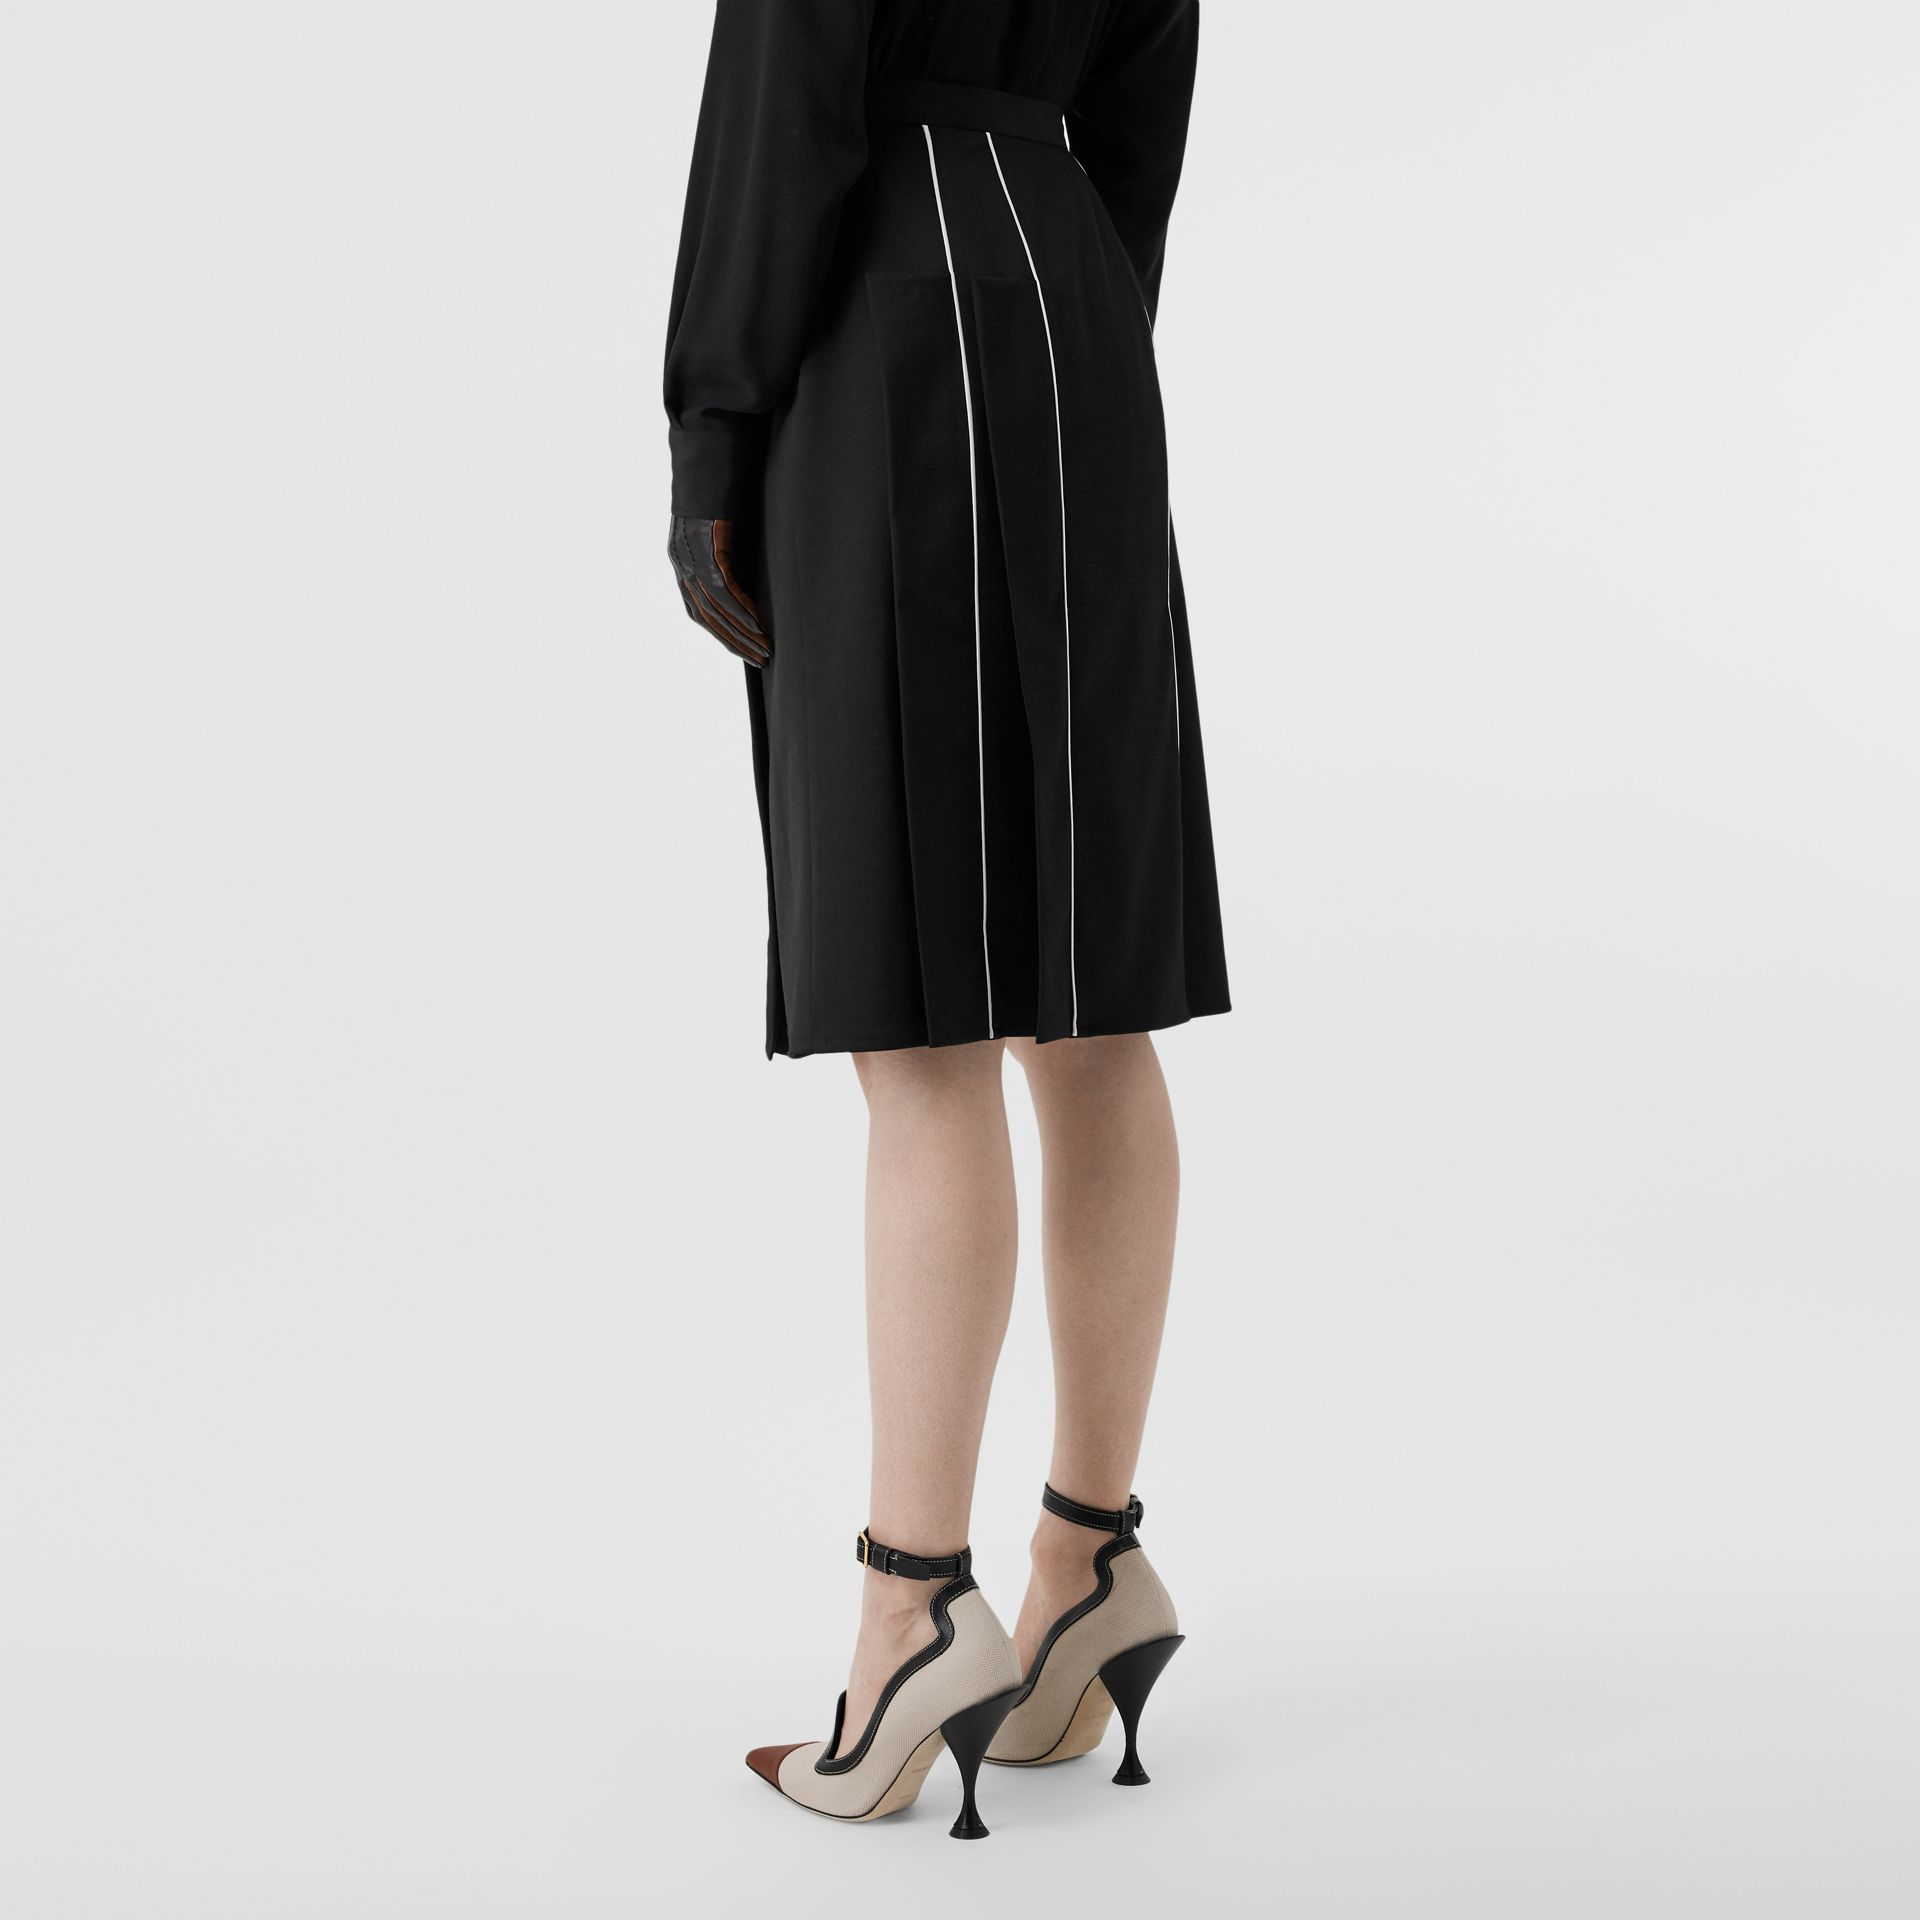 Piping Detail Stretch Wool Crepe Skirt in Black - Women | Burberry - gallery image 2